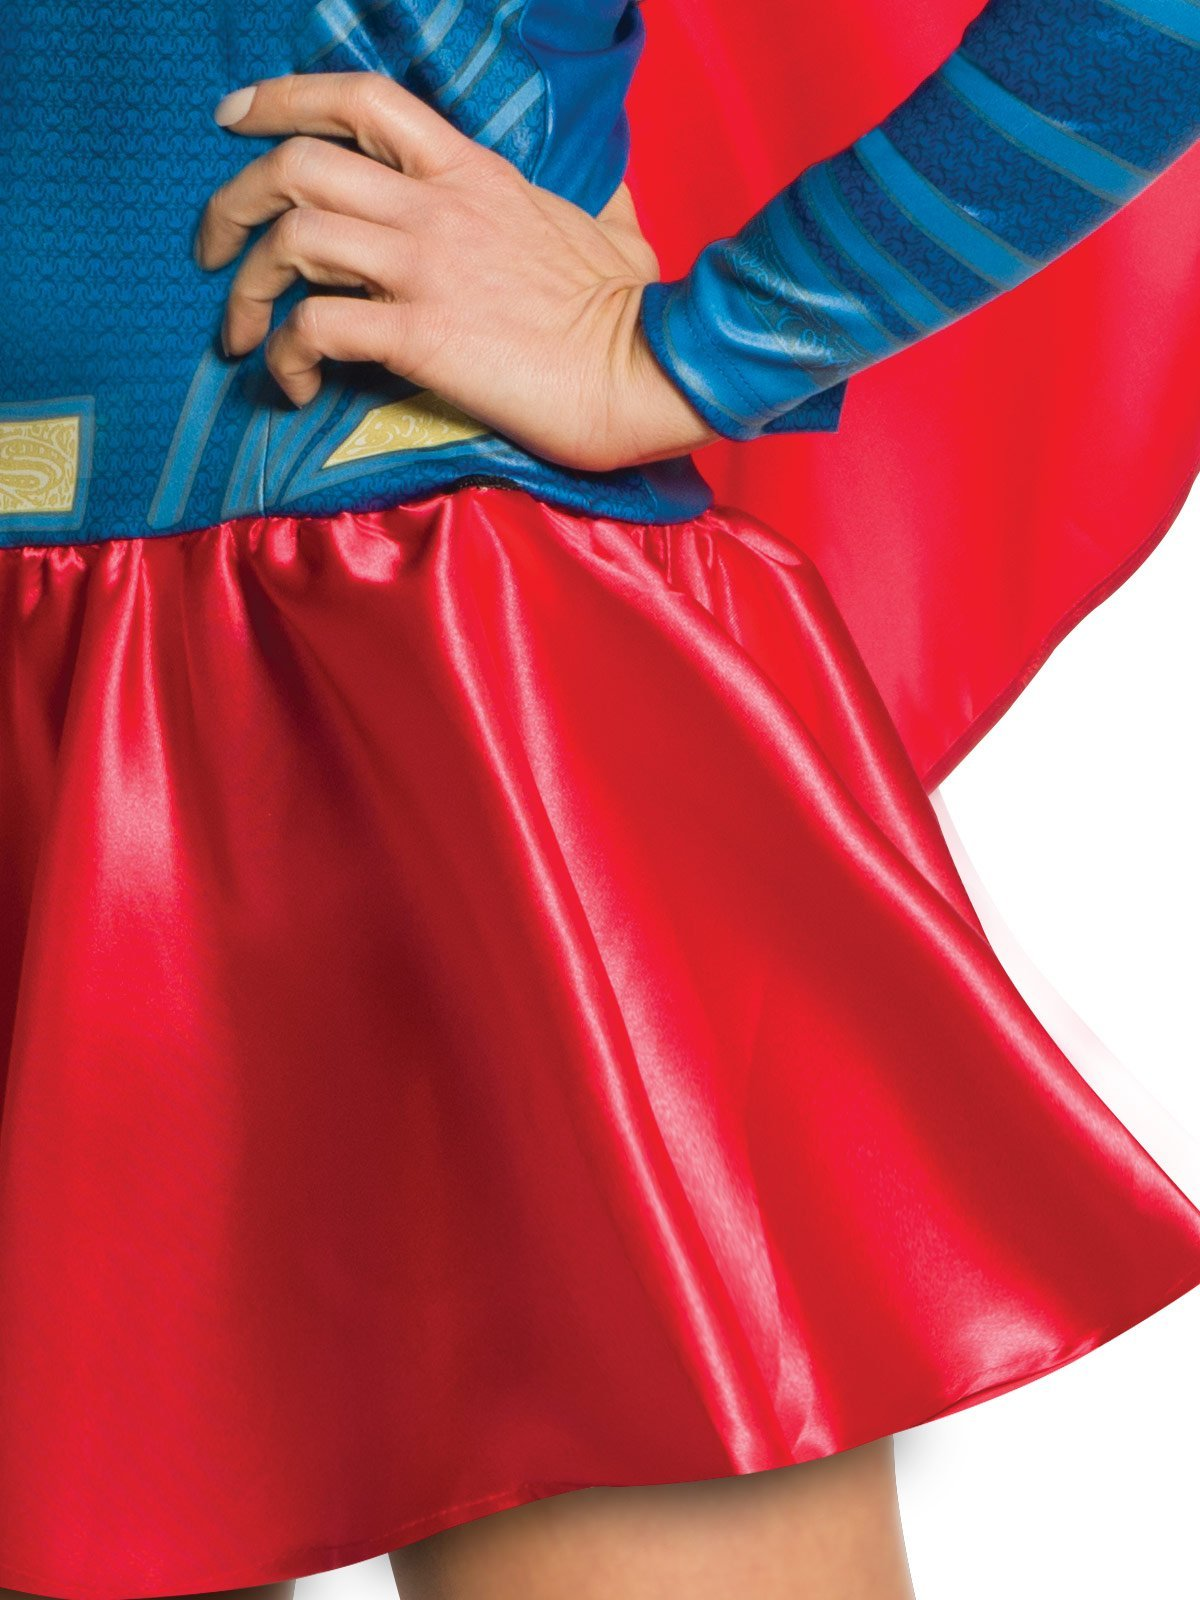 Supergirl Superhero Costume - Buy Online Only - The Costume Company | Australian & Family Owned